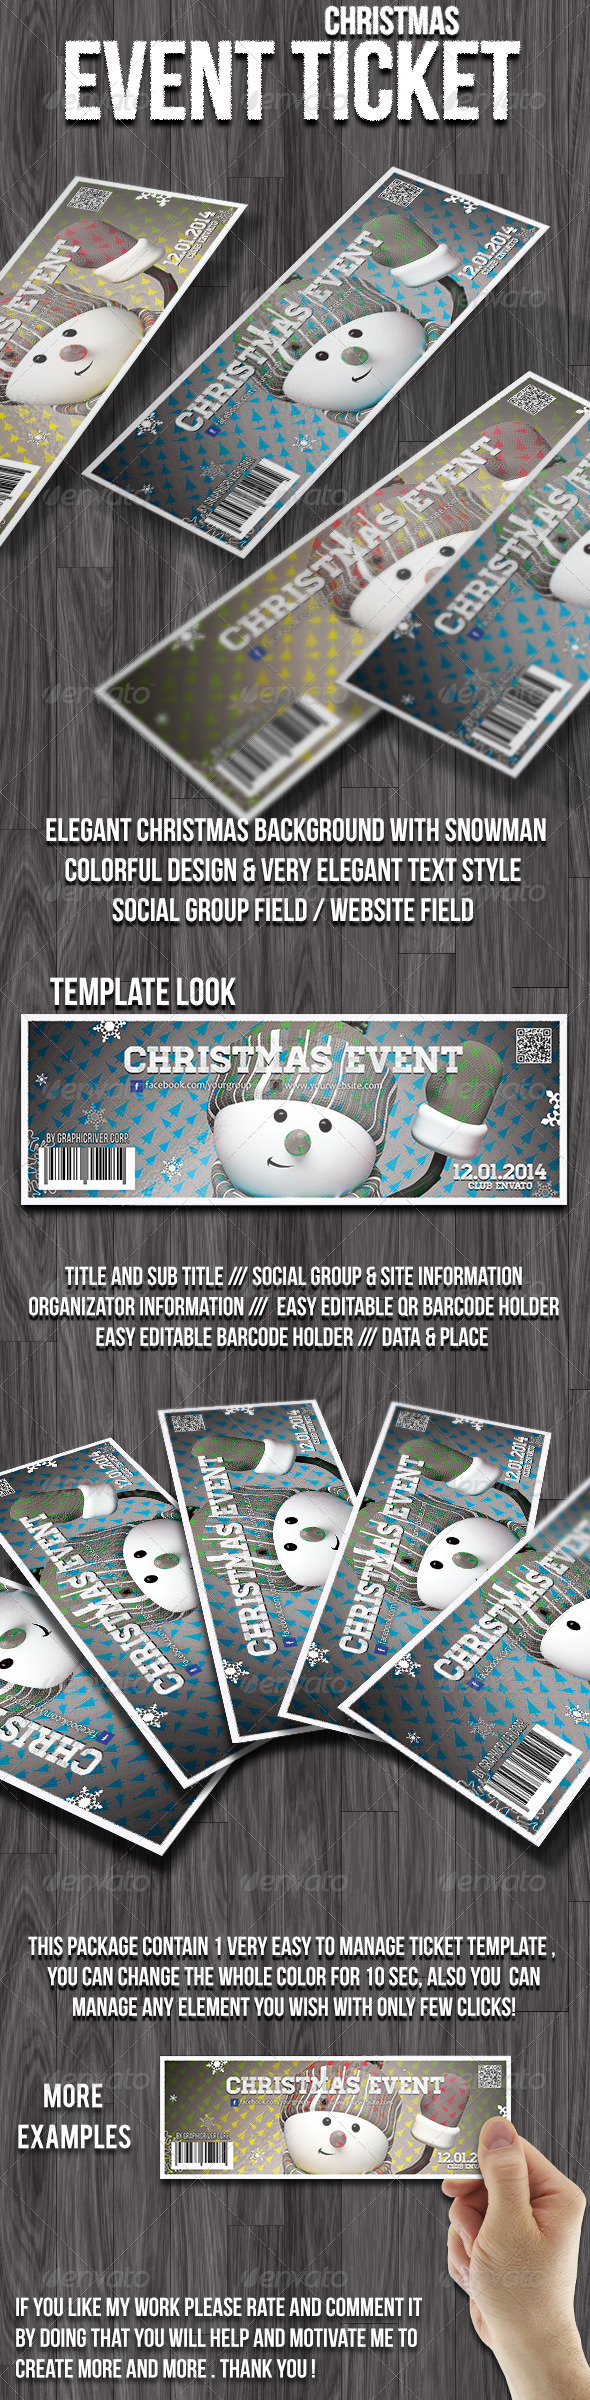 GraphicRiver Christmas event ticket 6280127